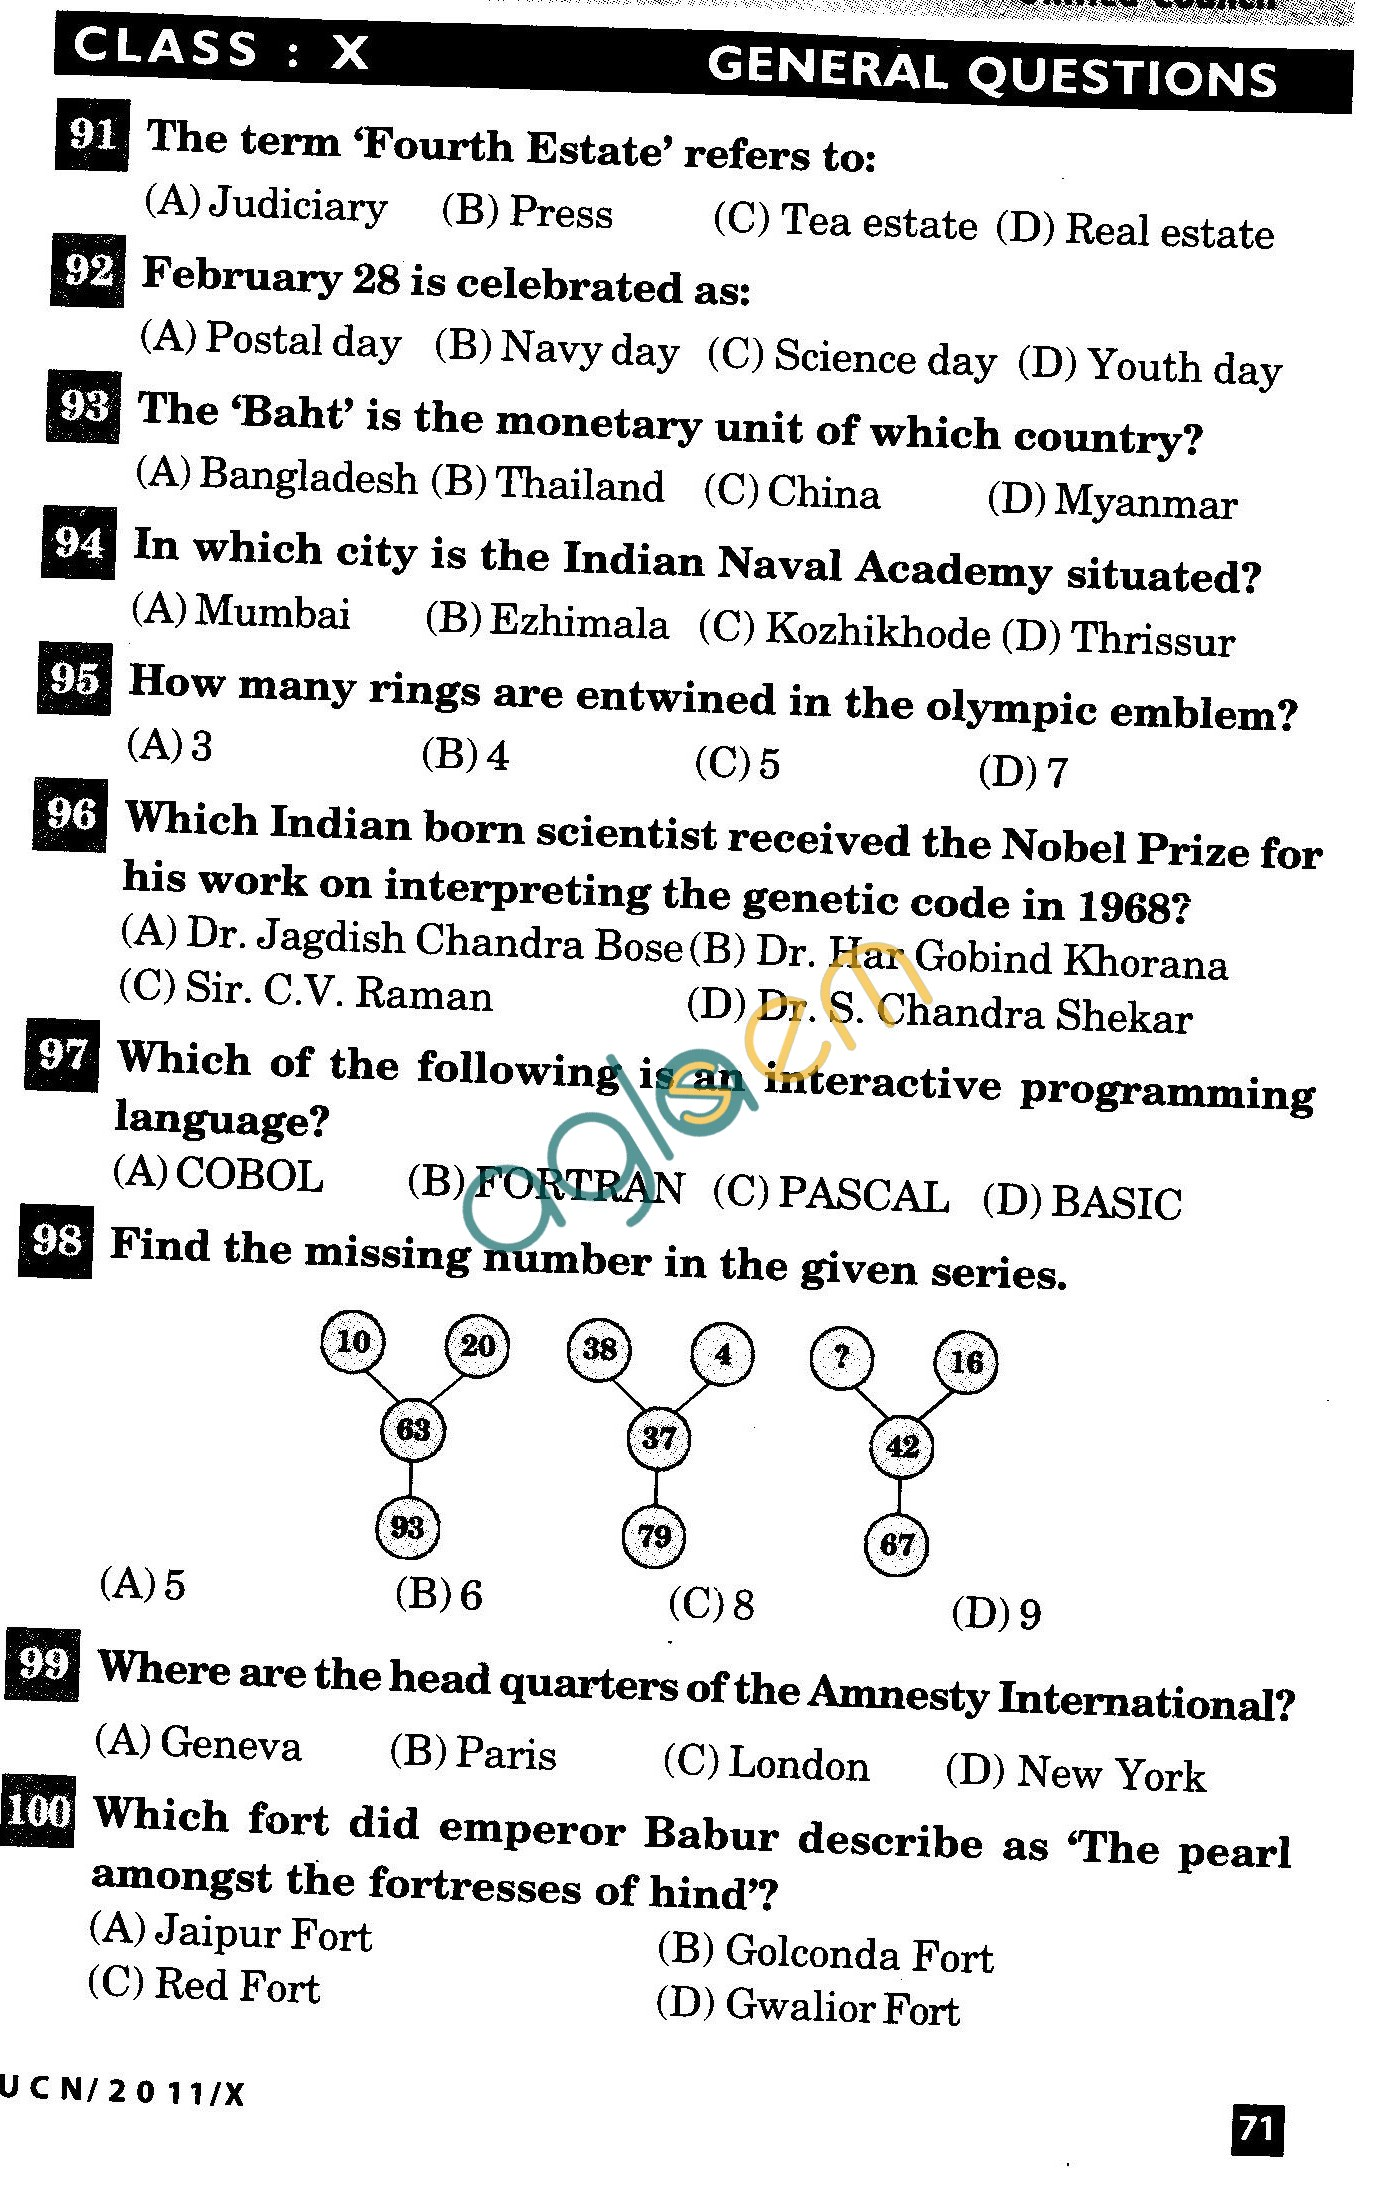 NSTSE 2011 Class X Question Paper with Answers - General Knowledge